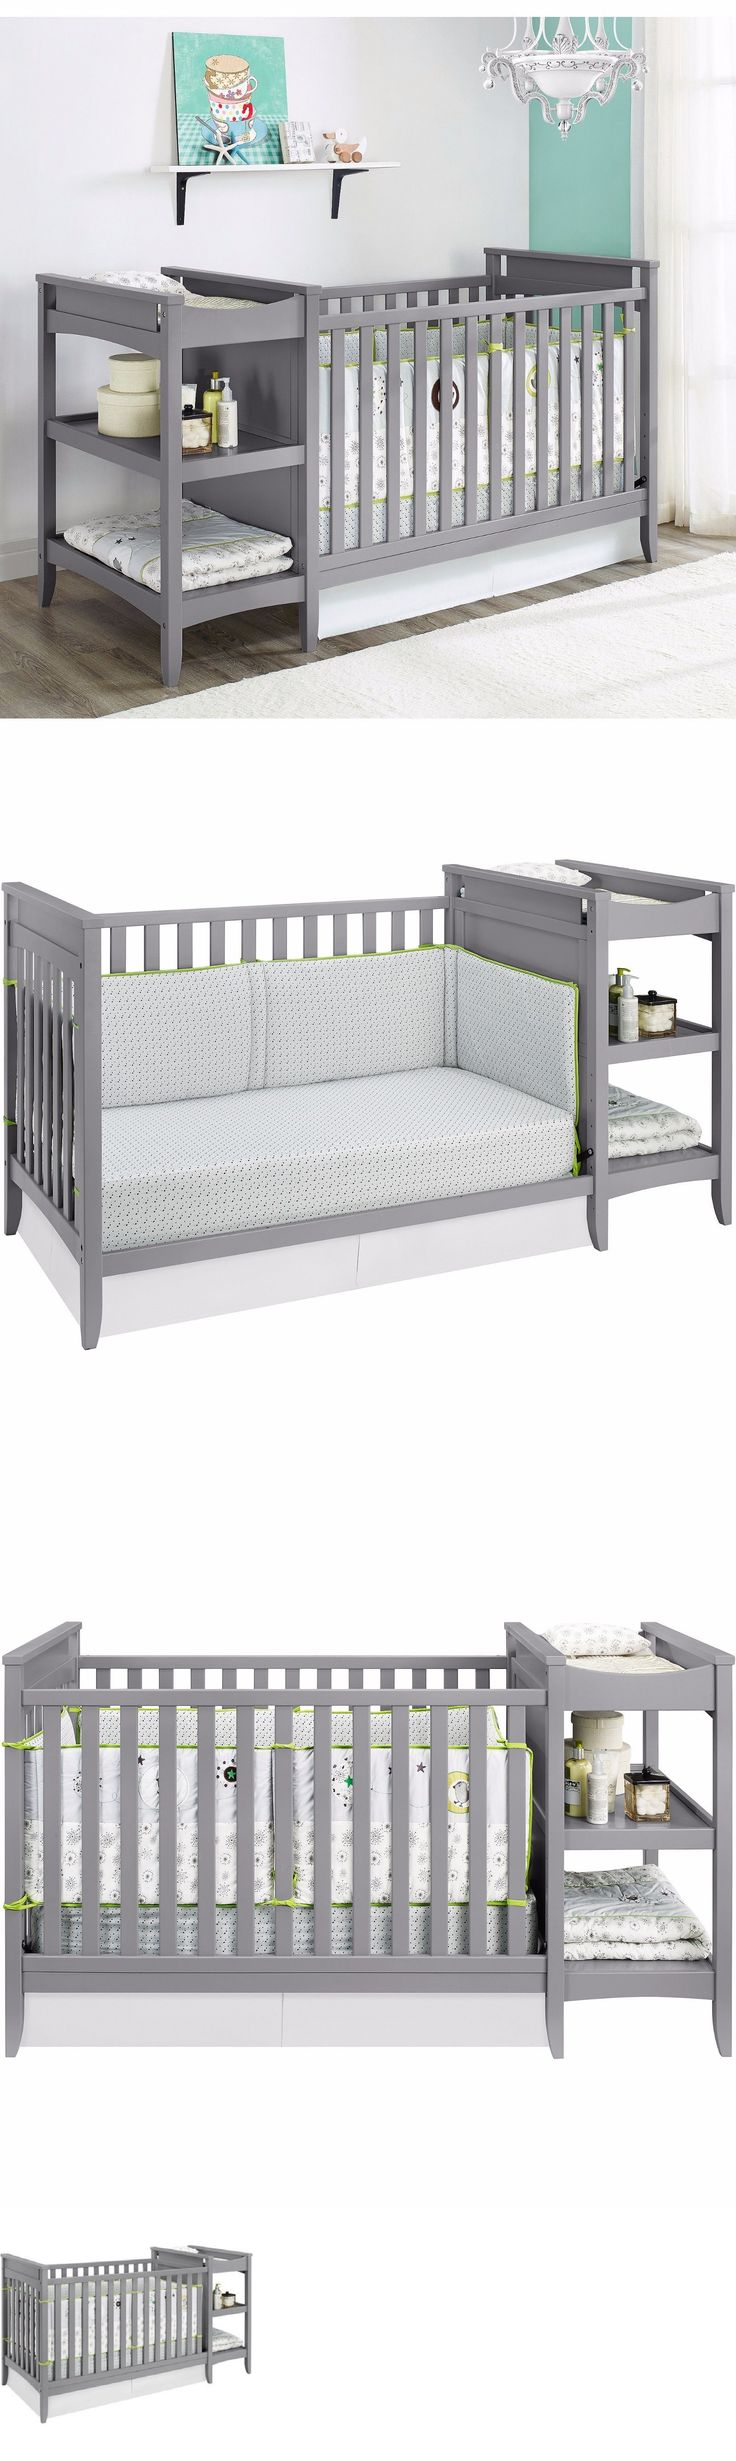 Baby Nursery: Baby Furniture Changing Table Cribs Grey Nursery Bed Diaper Modern Storage Gray BUY IT NOW ONLY: $349.99